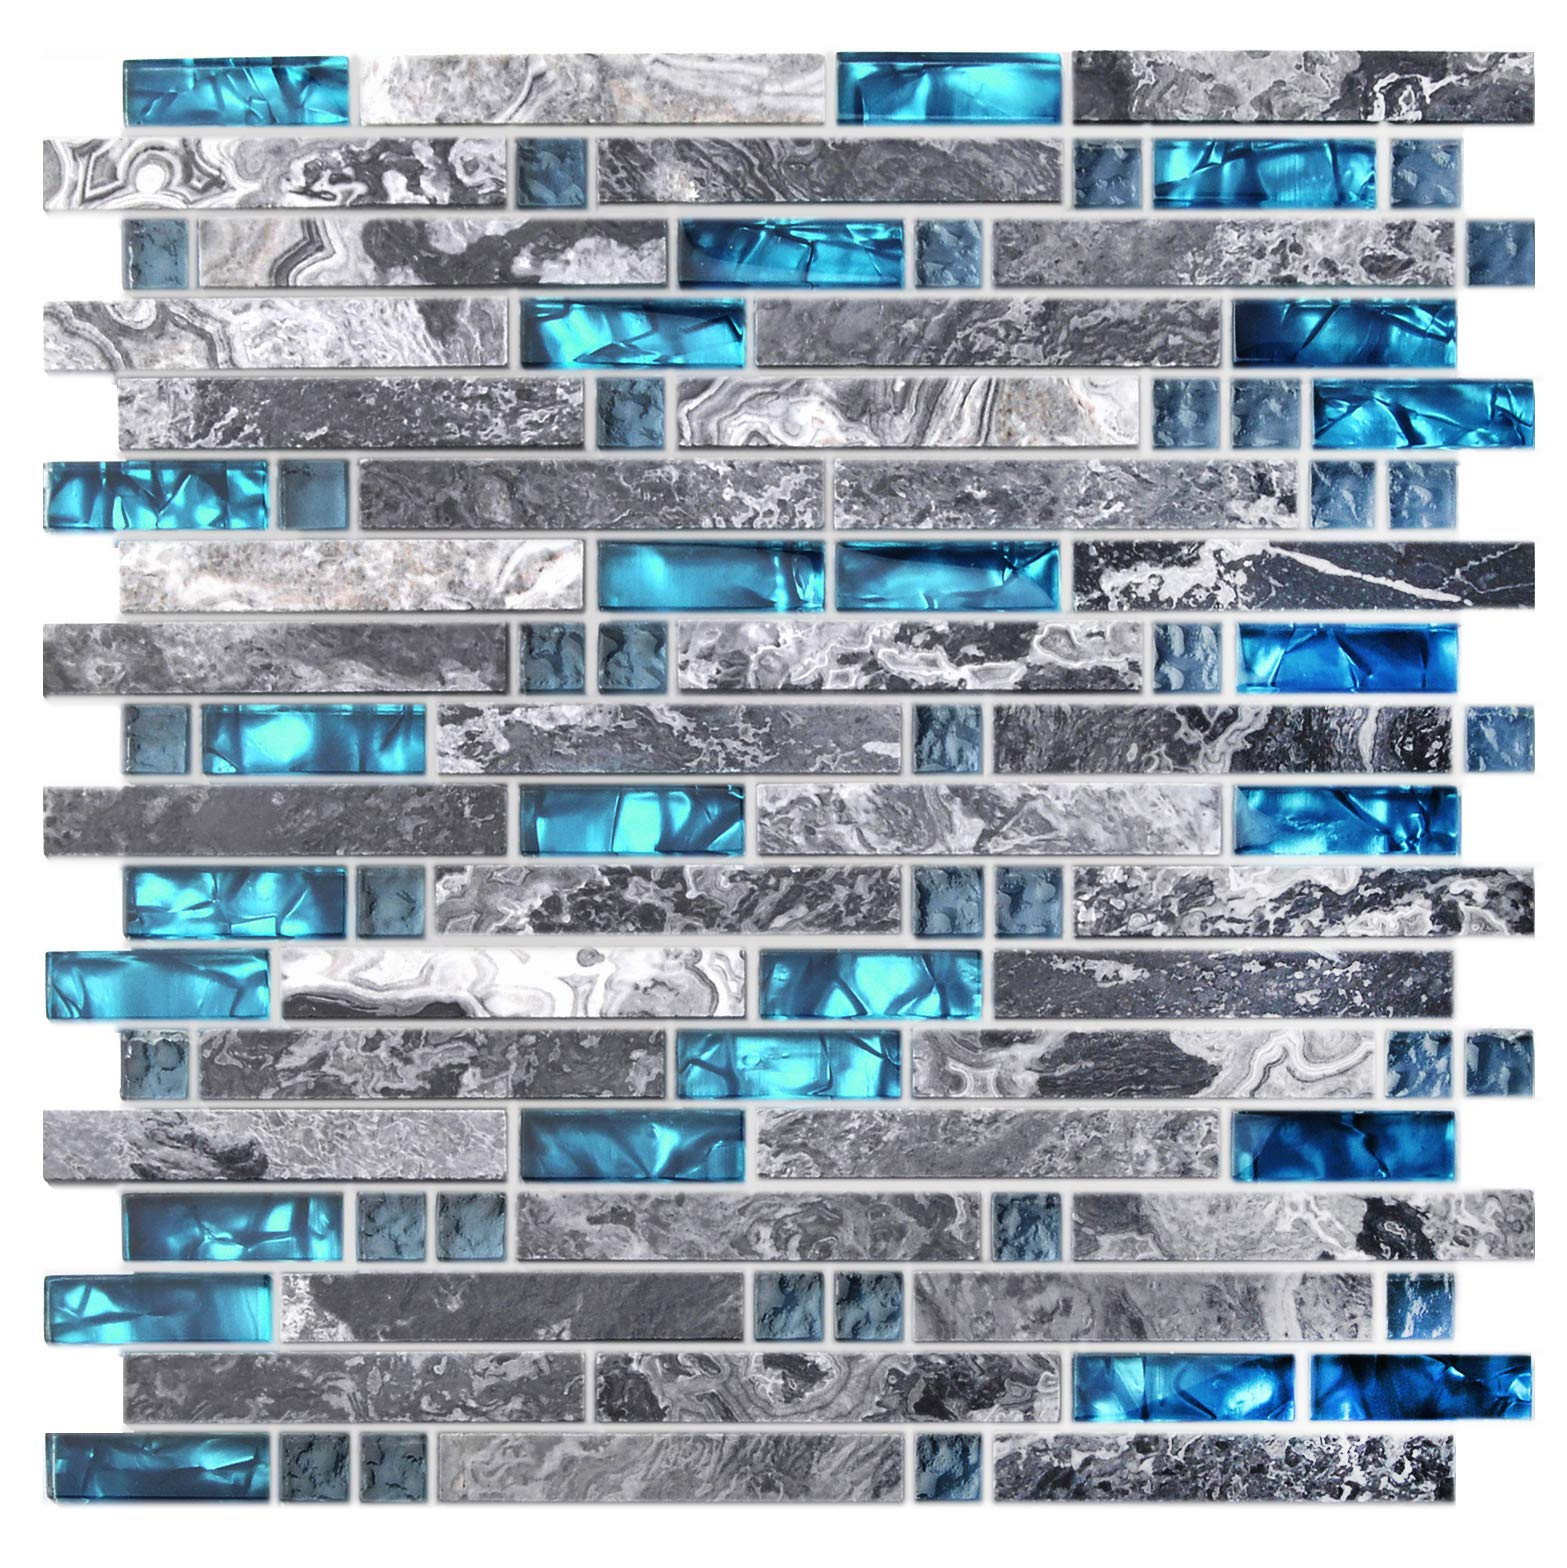 Home Building Glass Tile Kitchen Backsplash Idea Bath Shower Wall Decor Teal Blue Gray Wave Marble Interlocking Pattern Art Mosaics TSTMGT002 (1 Sample 12 x 12 Inches) by BLUJELLYFISH